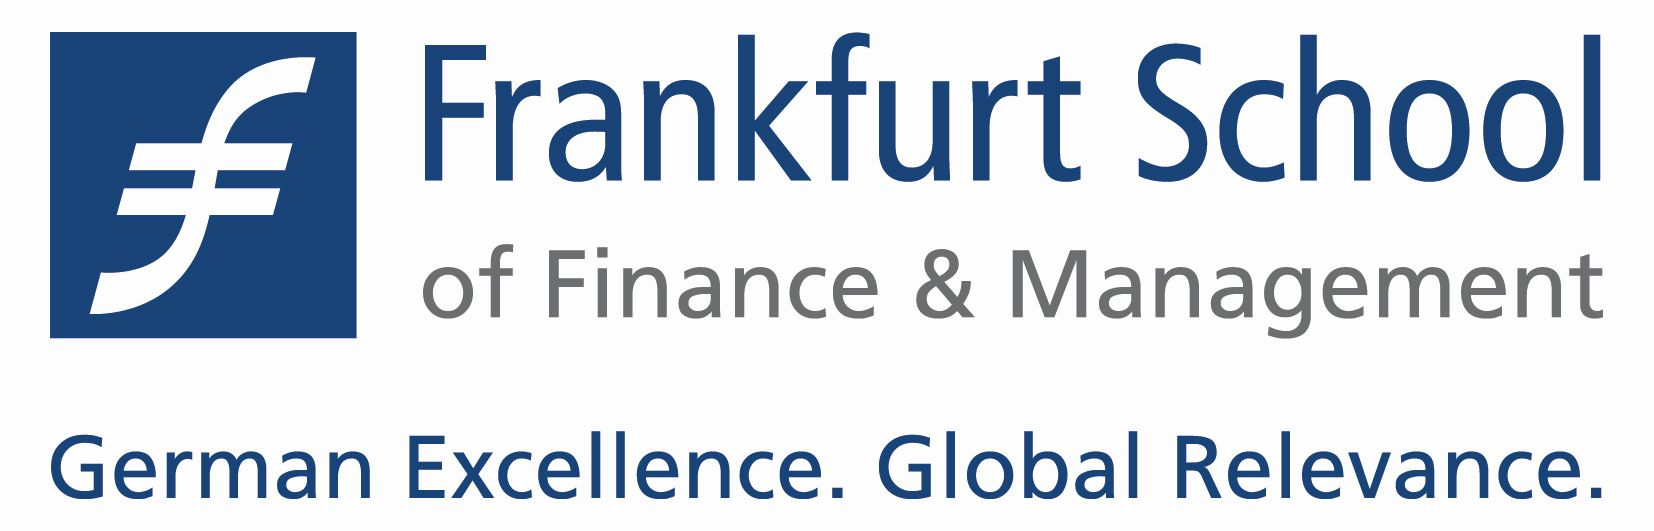 Frankfurt_School_of_Finance__Management